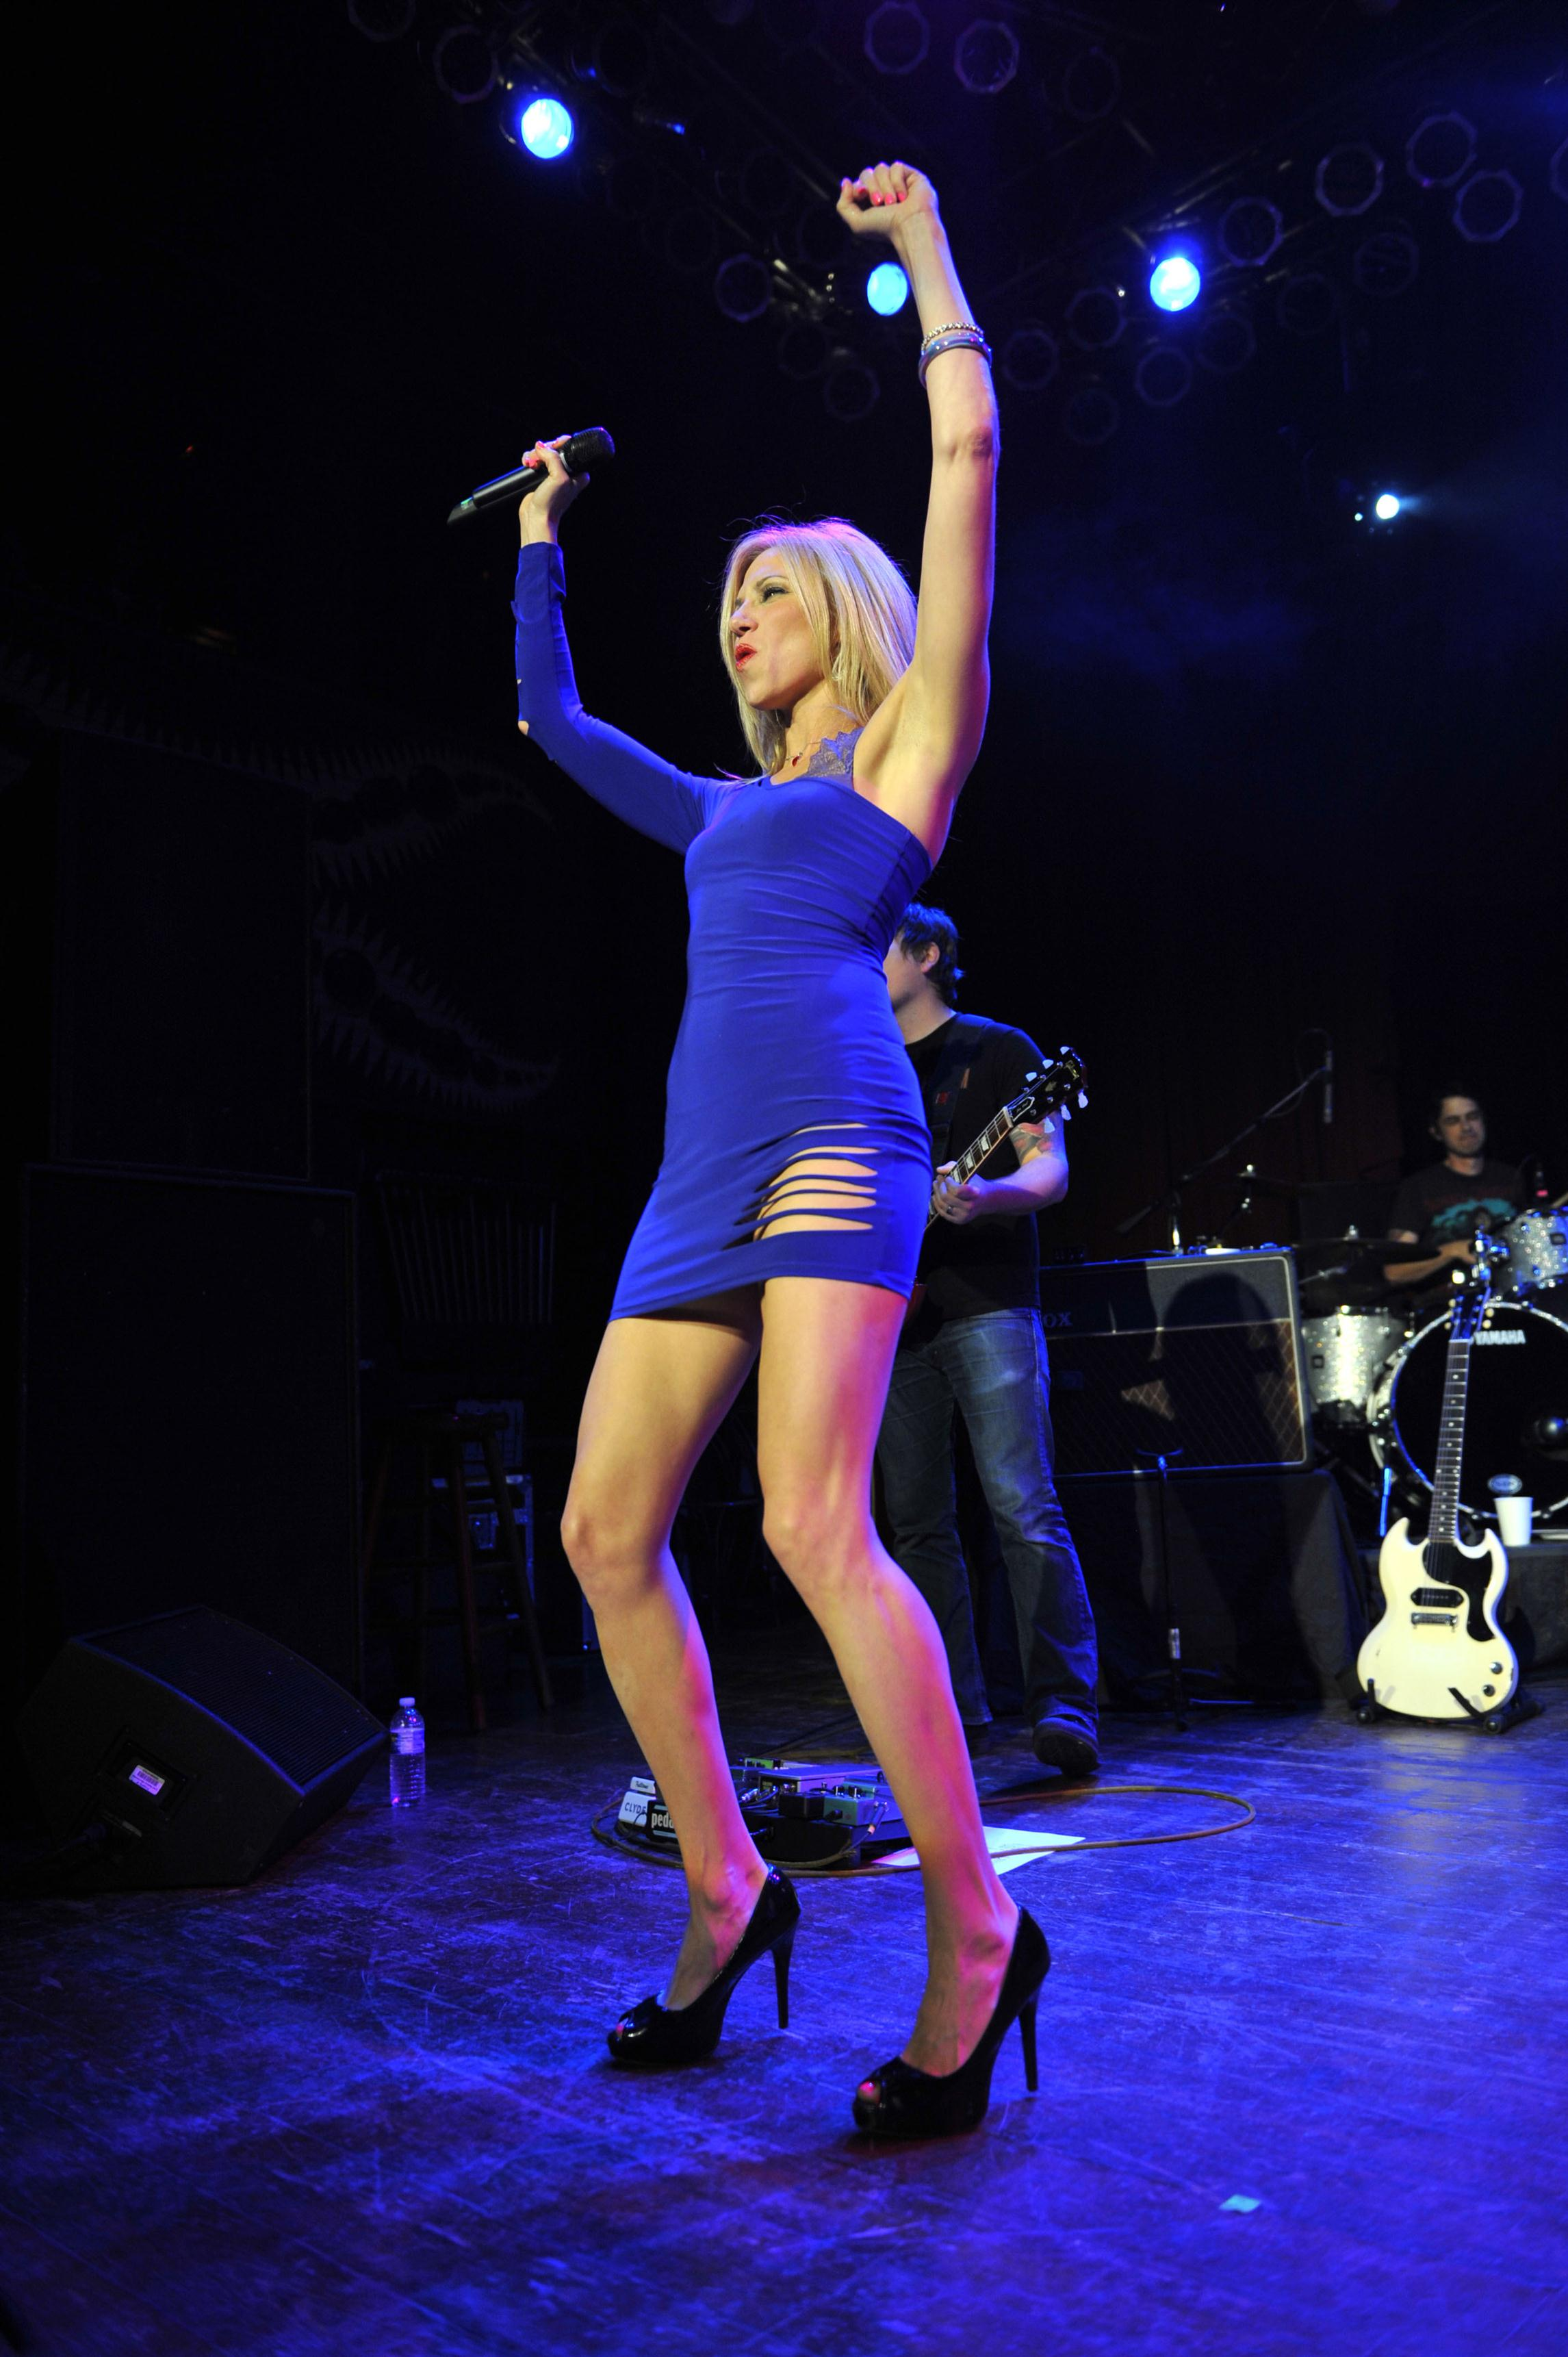 Debbie gibson house of blues performance in blue tight for Performance house